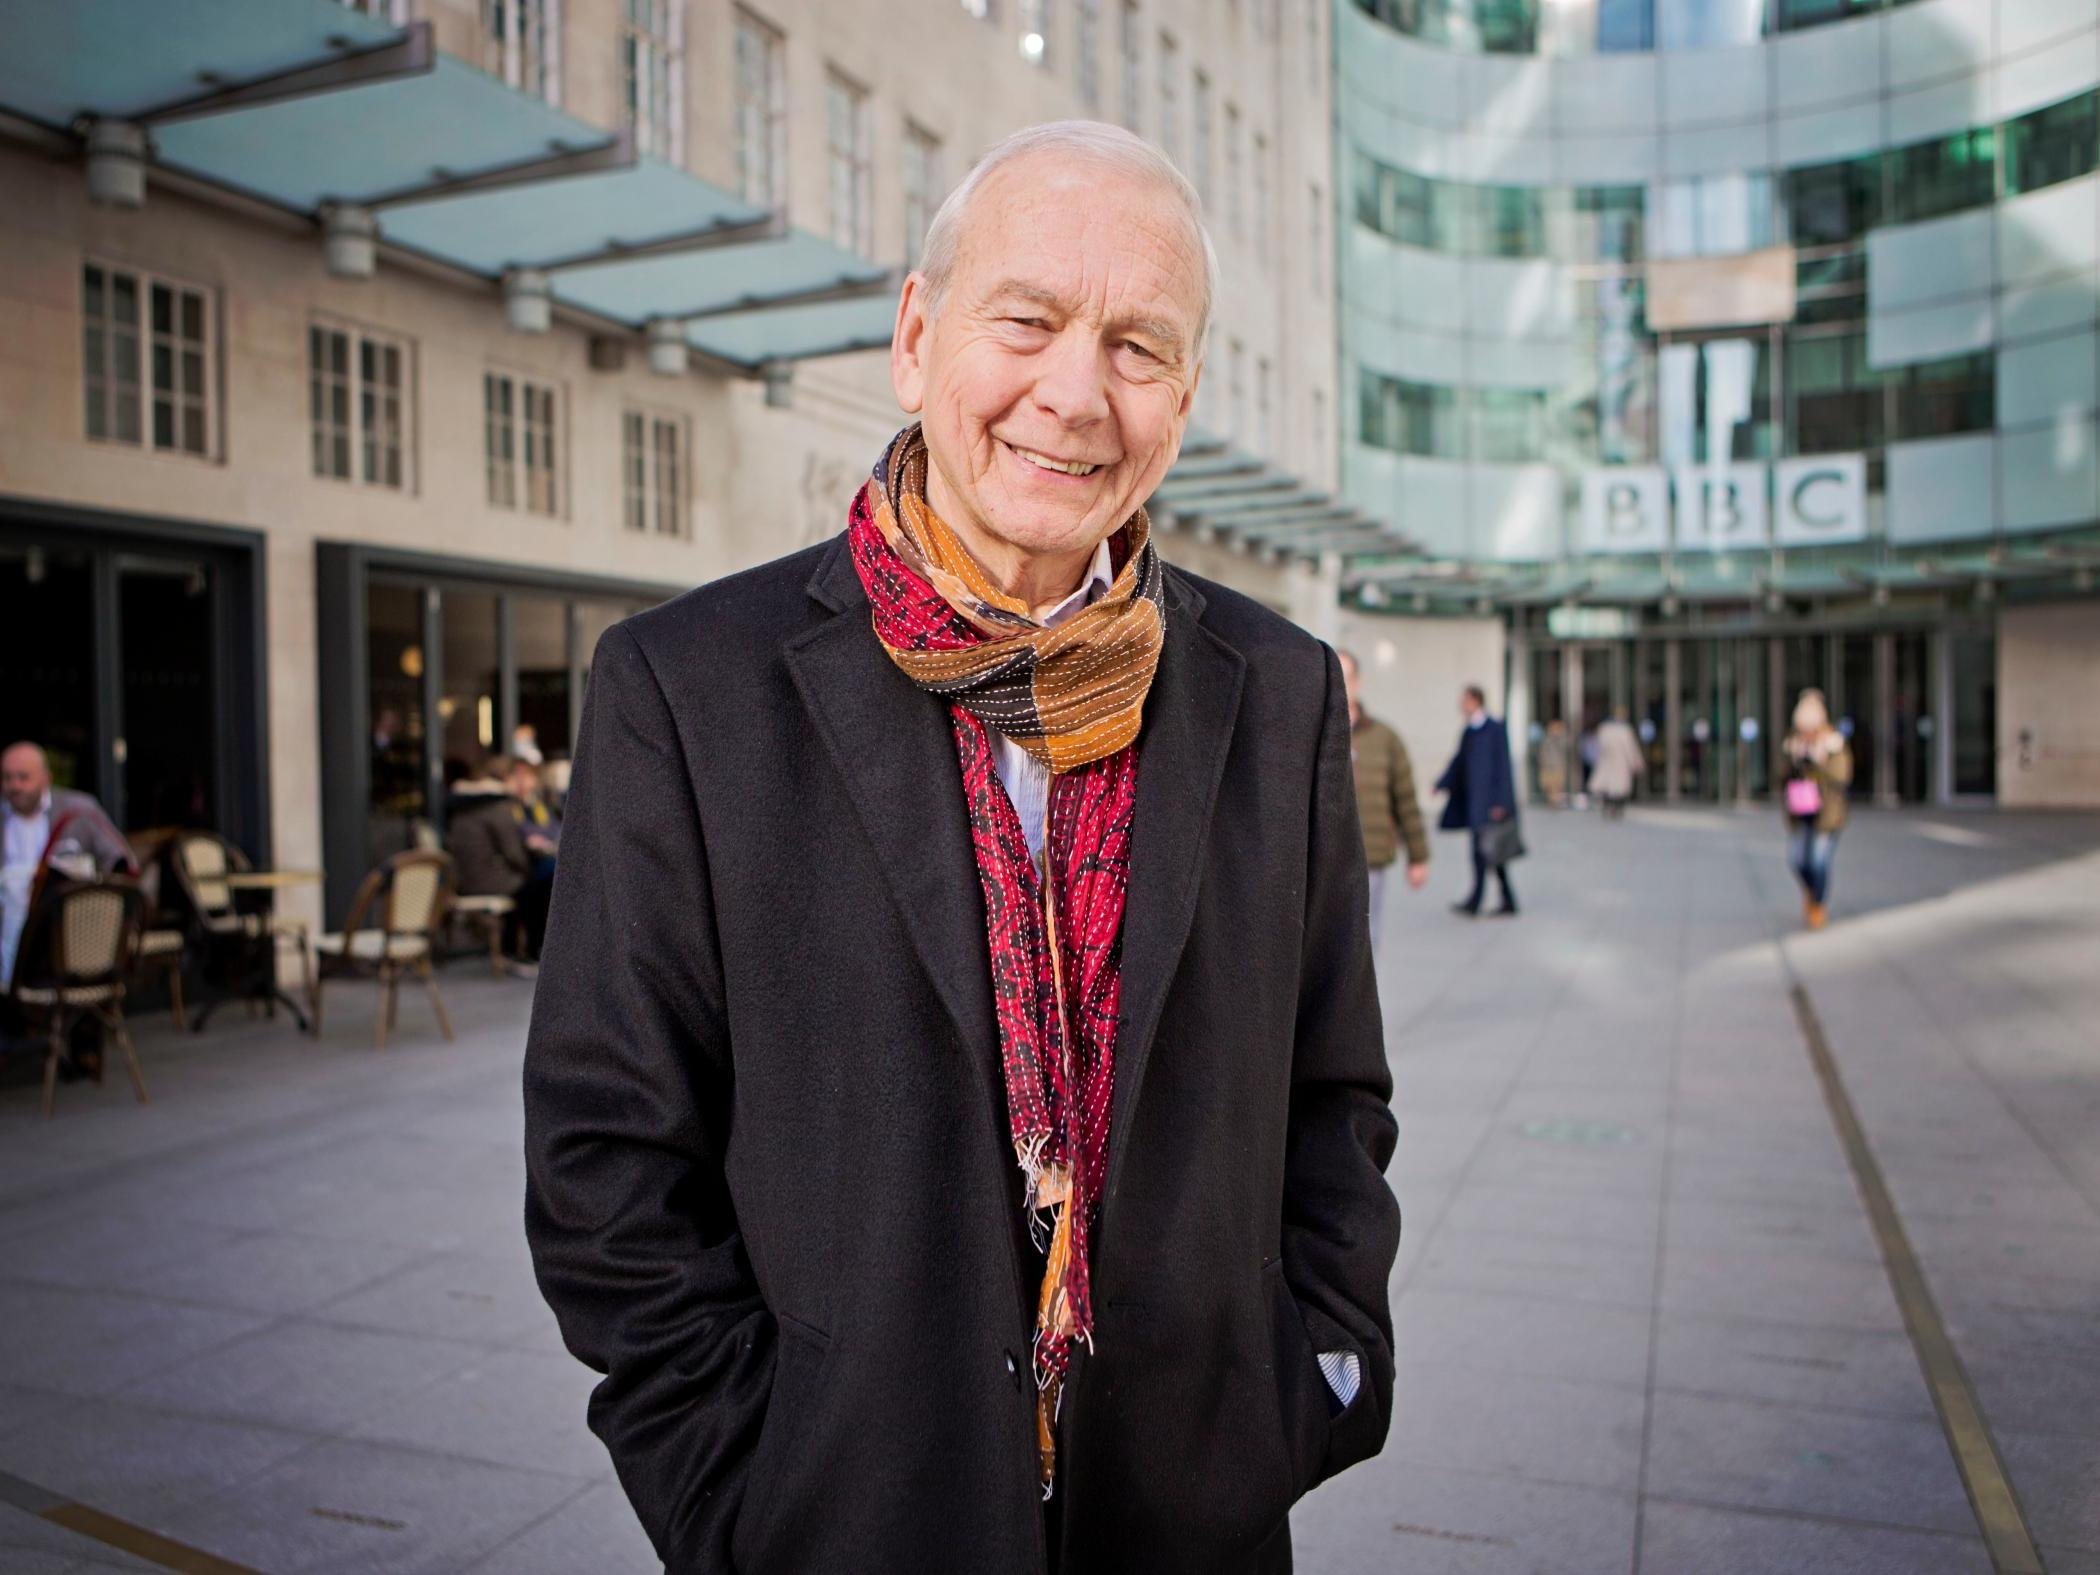 John Humphrys: BBC broadcaster compared to 'prophet' with 'fearless moral passion' on final Today programme